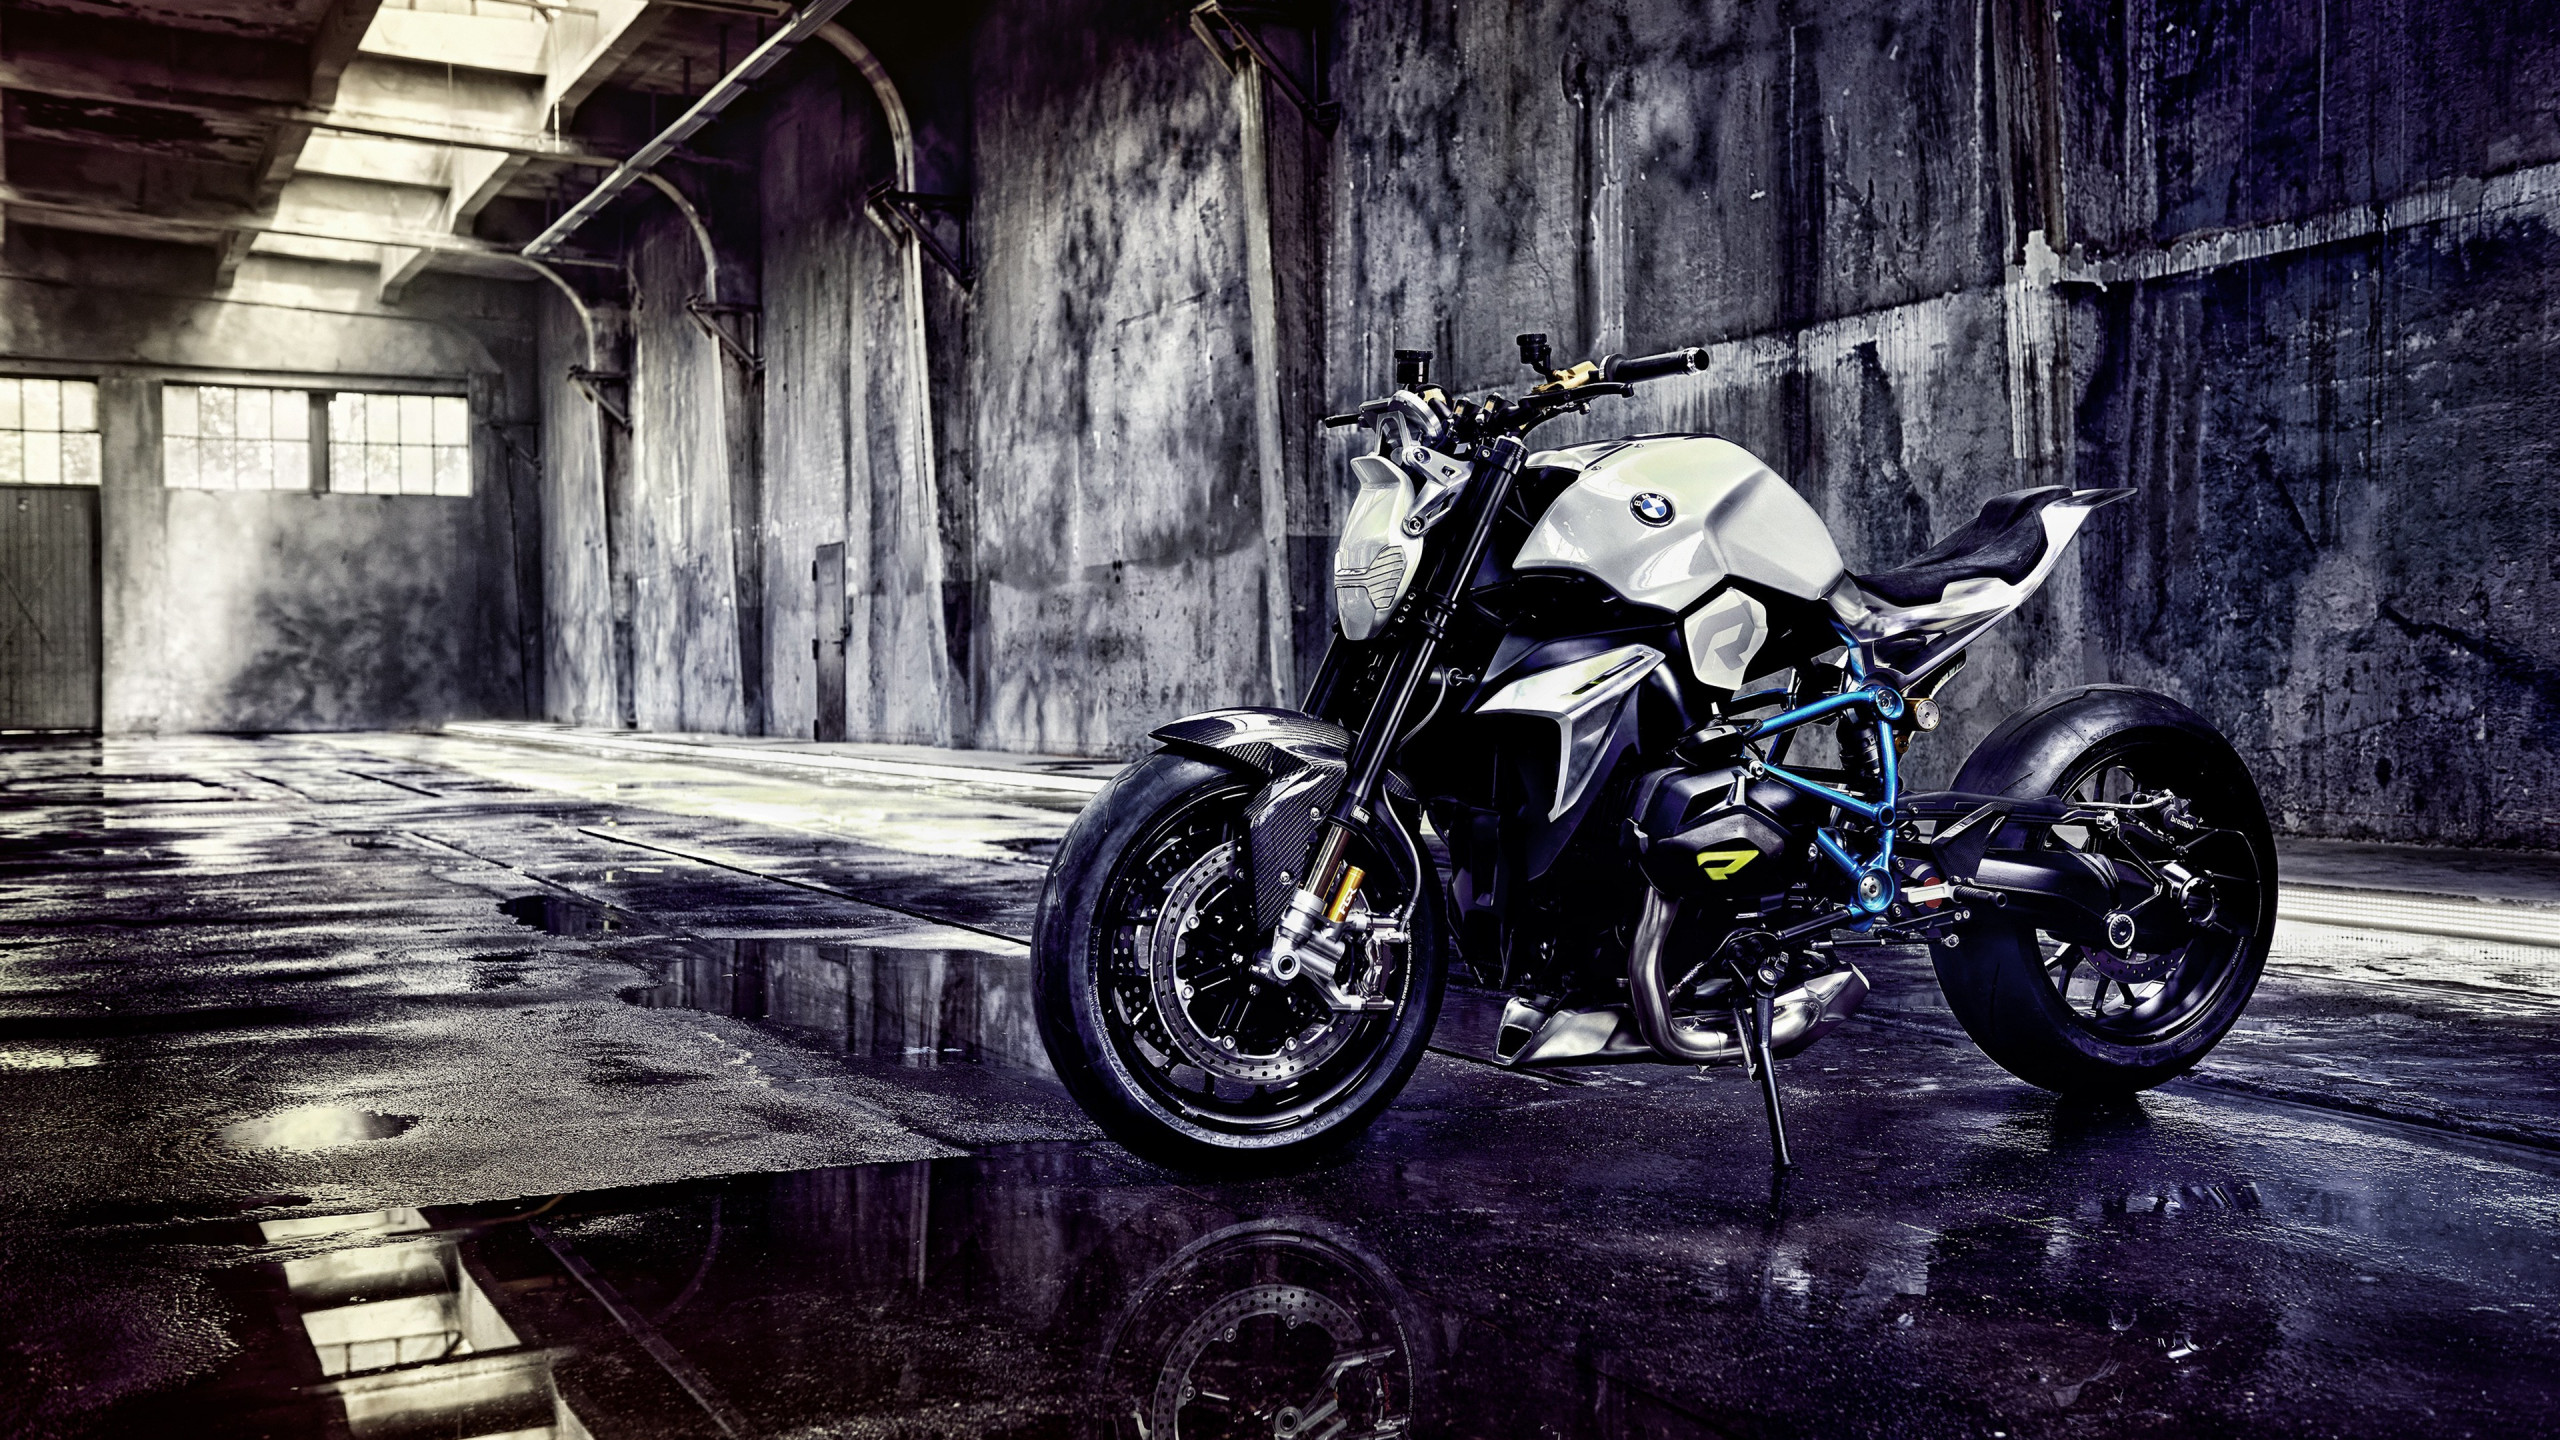 BMW Concept Roadster Motorcycle wallpaper 2560x1440